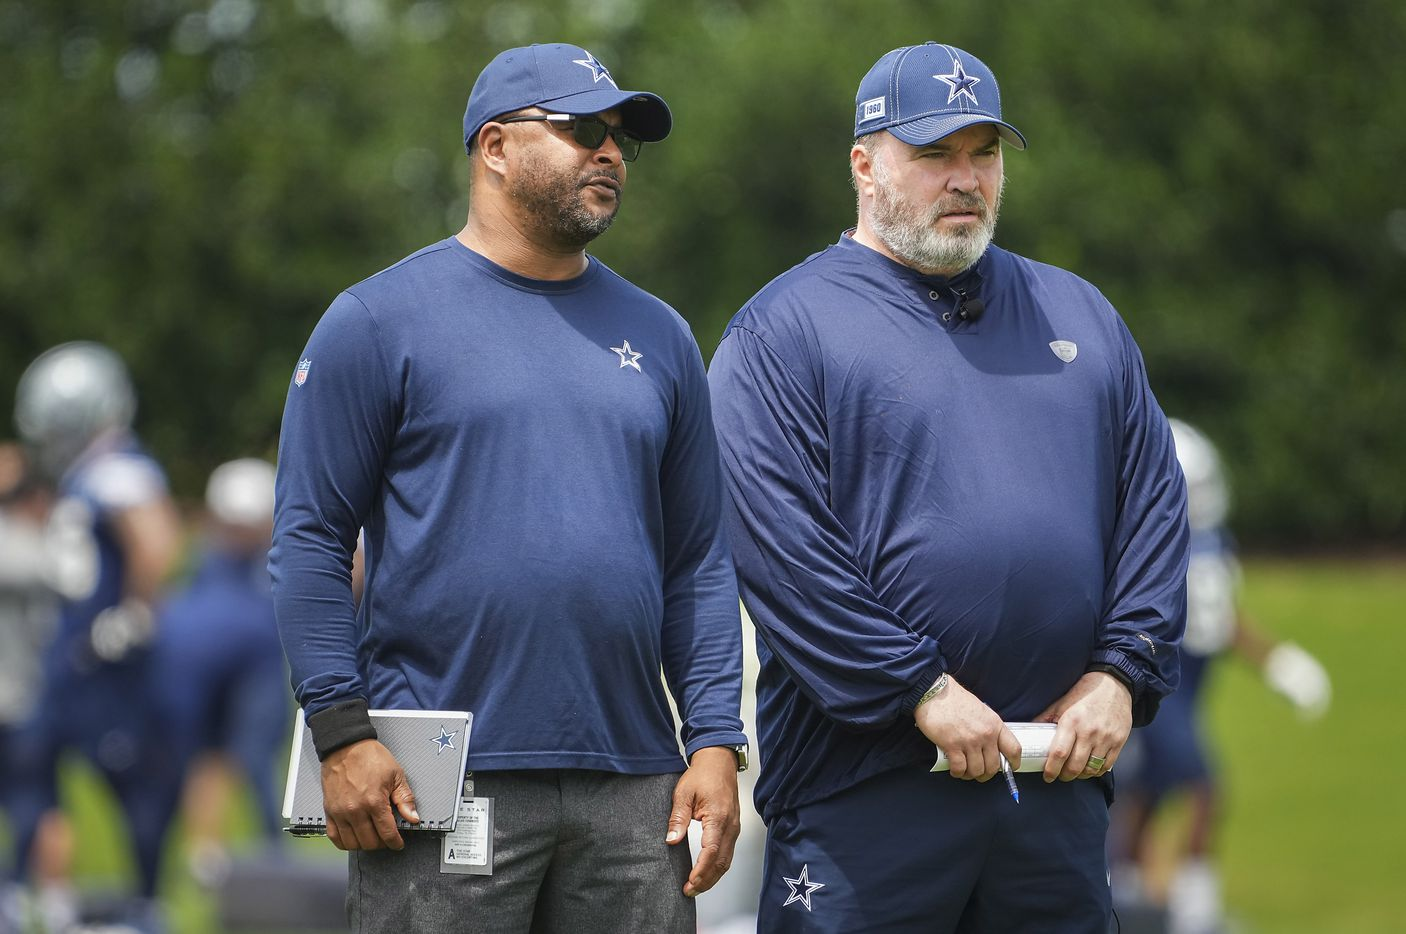 Dallas Cowboys head coach Mike McCarthy (right) and vice president of player personnel Will McClay watch their team run drills during a minicamp practice at The Star on Tuesday, June 8, 2021, in Frisco. (Smiley N. Pool/The Dallas Morning News)